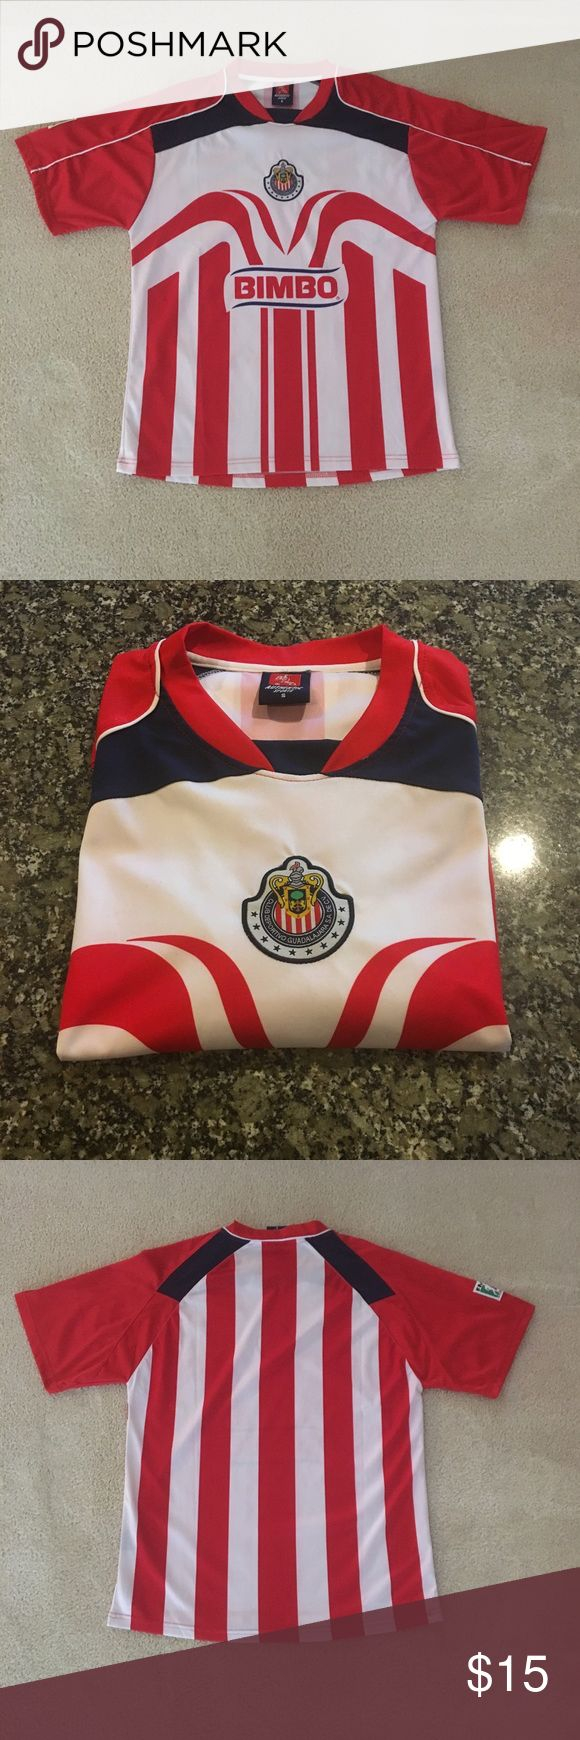 Authentic Club Deportivo Guadalajara Soccer Jersey 100% polyester, club logo stitched in, excellent condition, no flaws. Shirts Tees - Short Sleeve